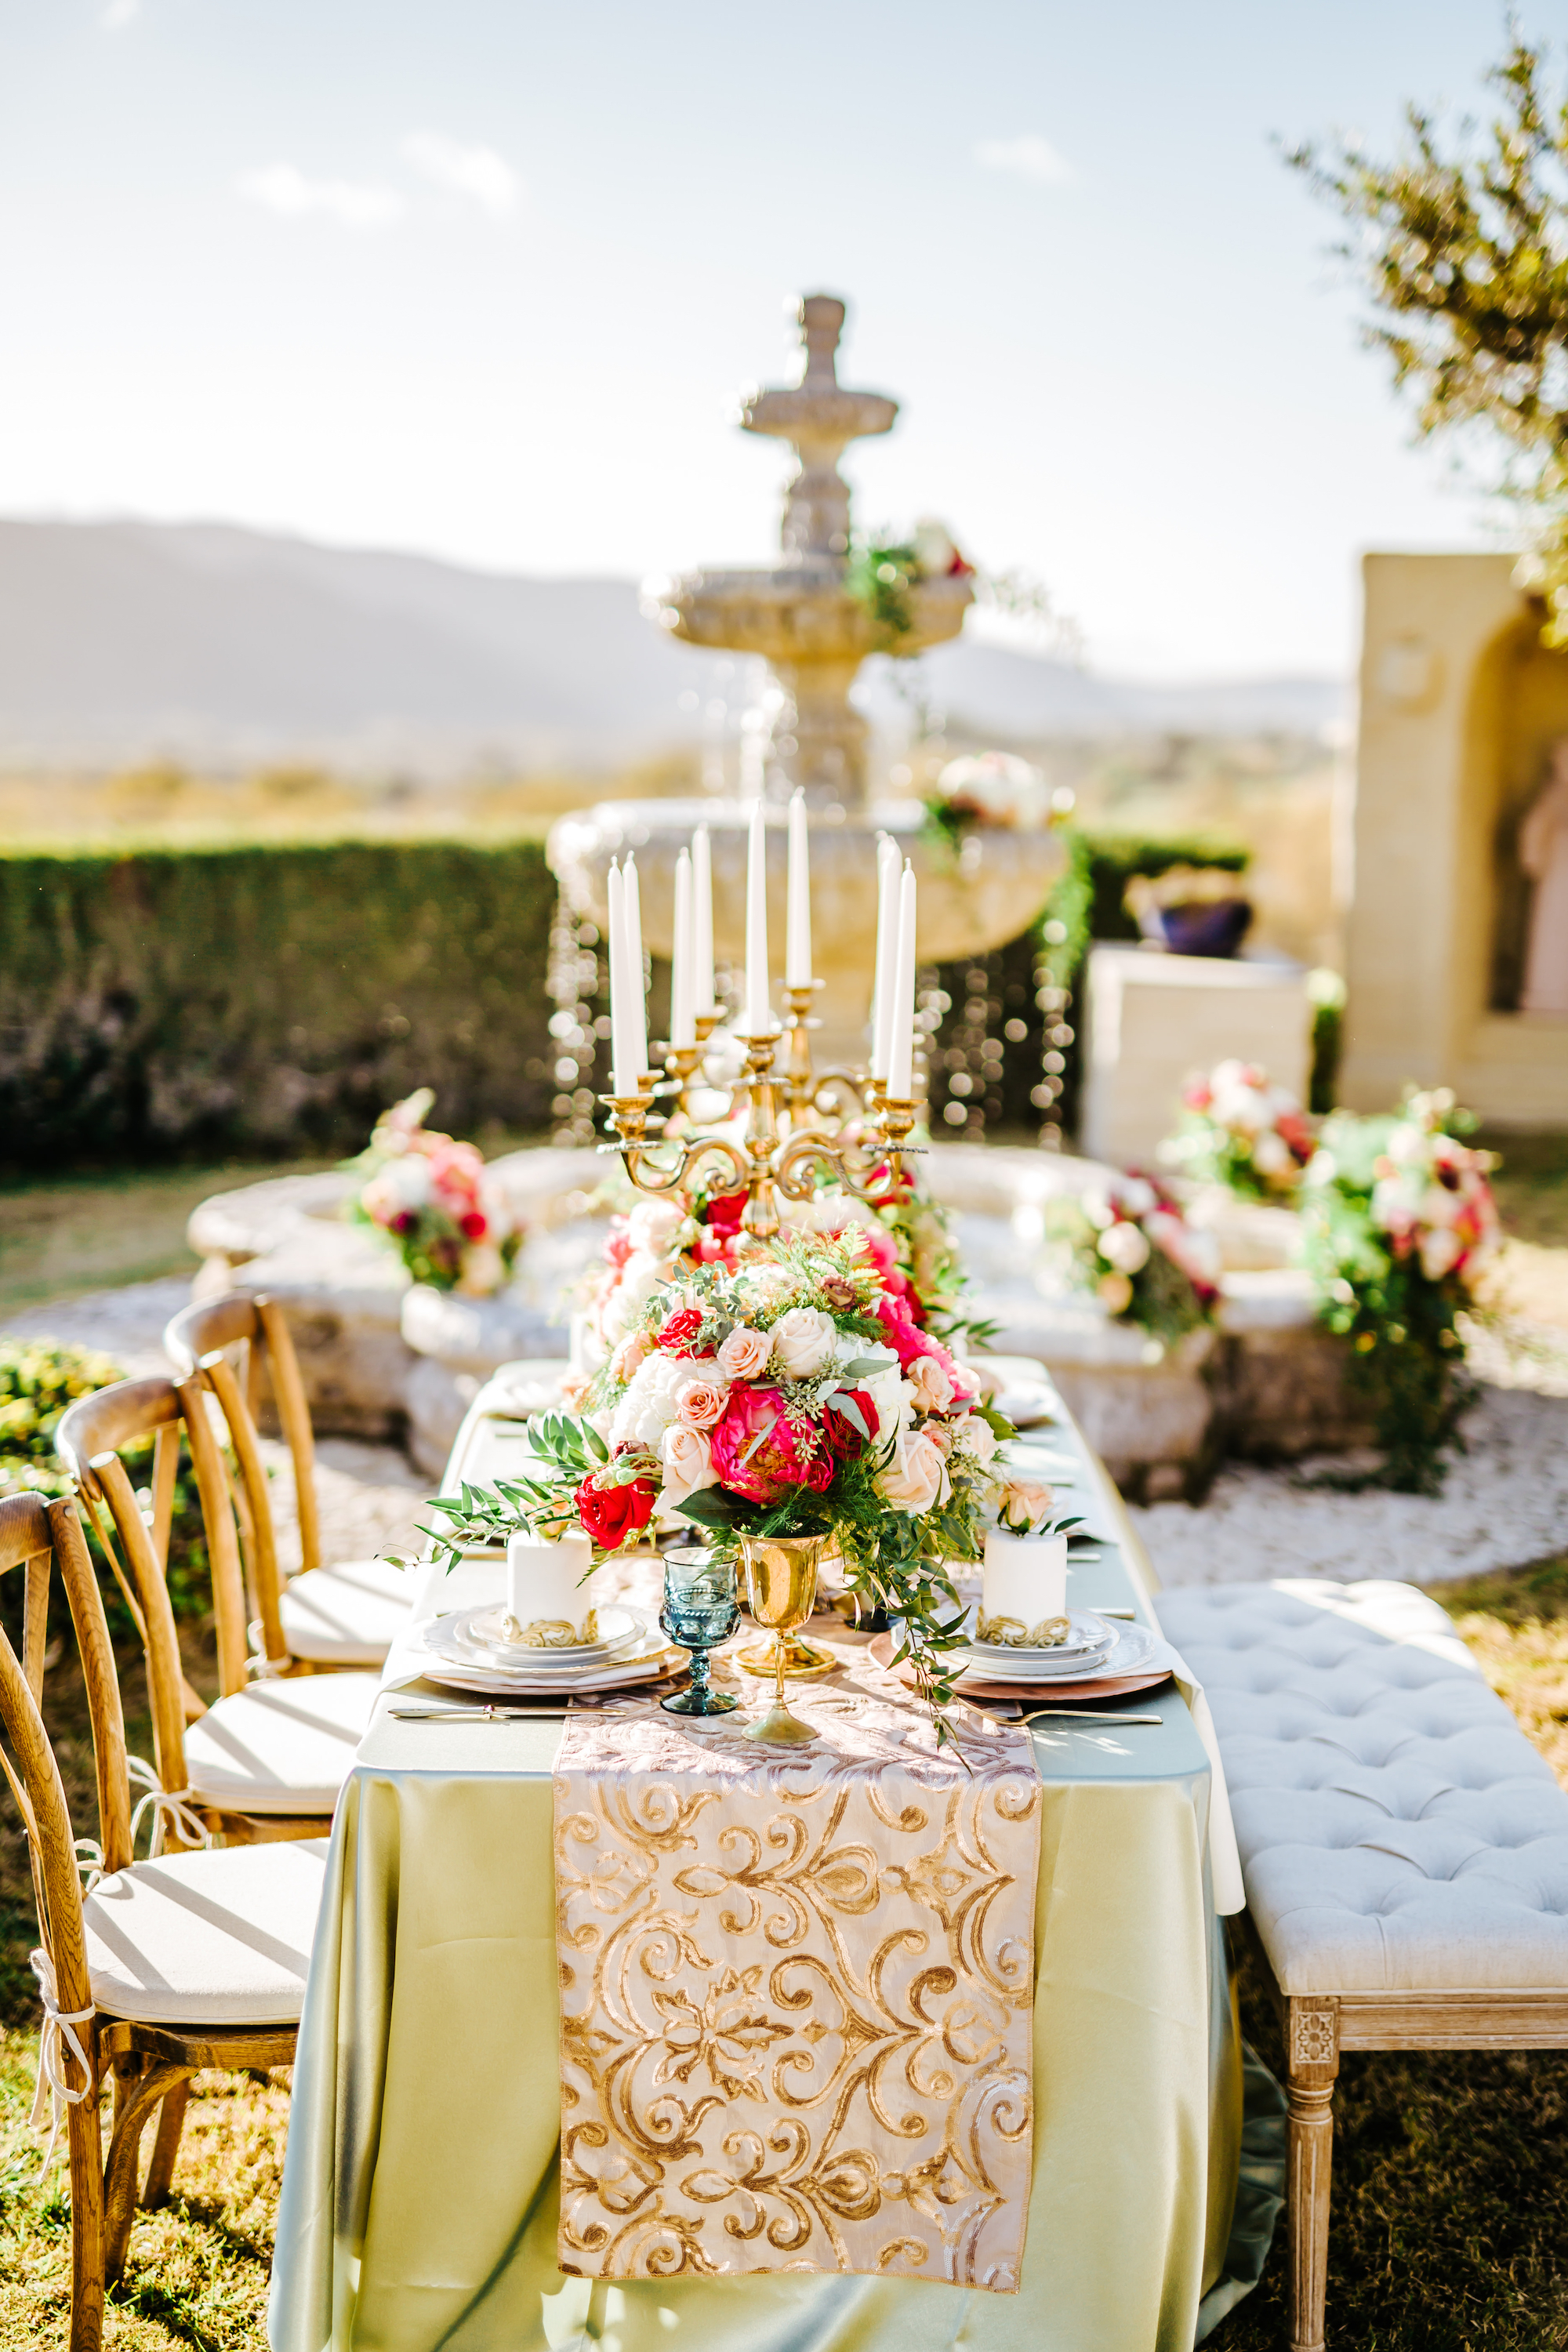 Lush Blush Whispering Rose Ranch Wedding10.jpg